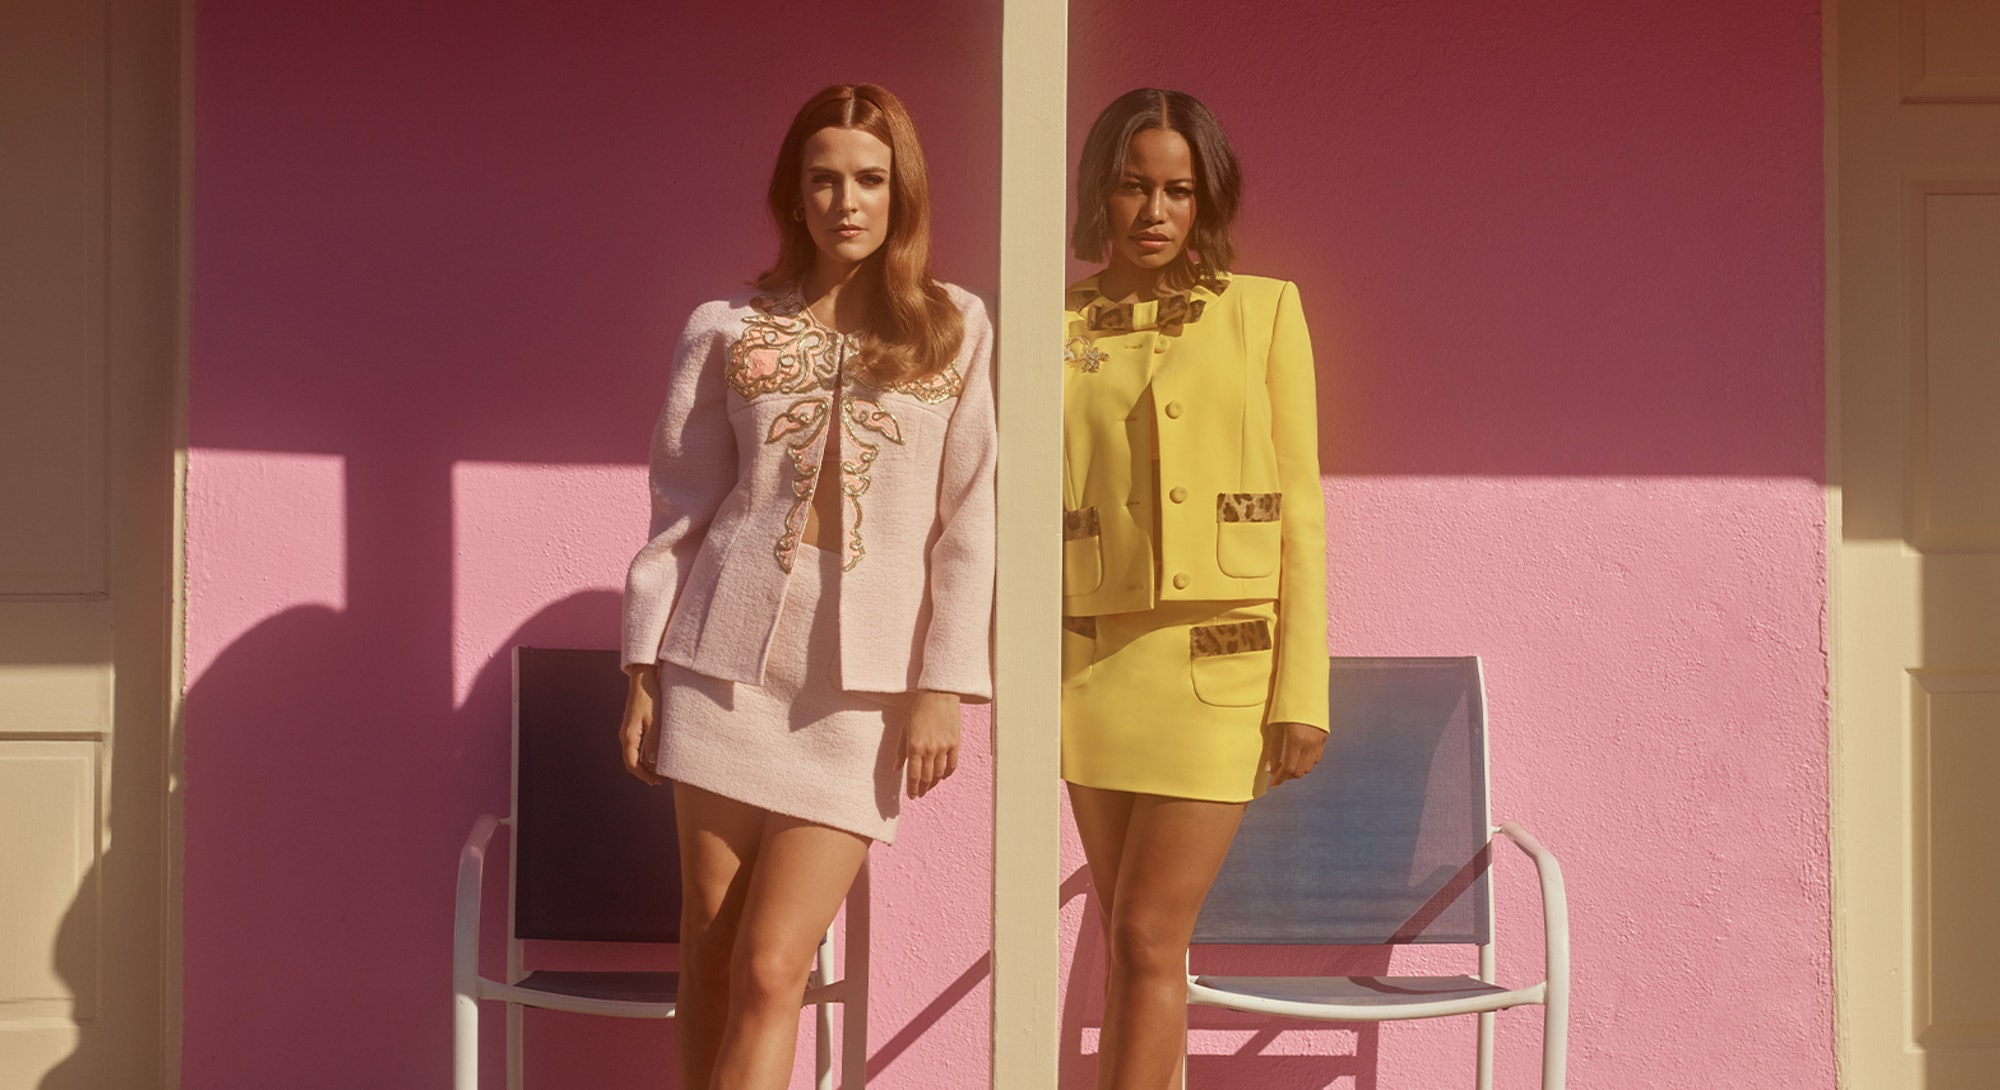 'Zola' stars Riley Keough and Taylour Paige pose for Bustle's cover.